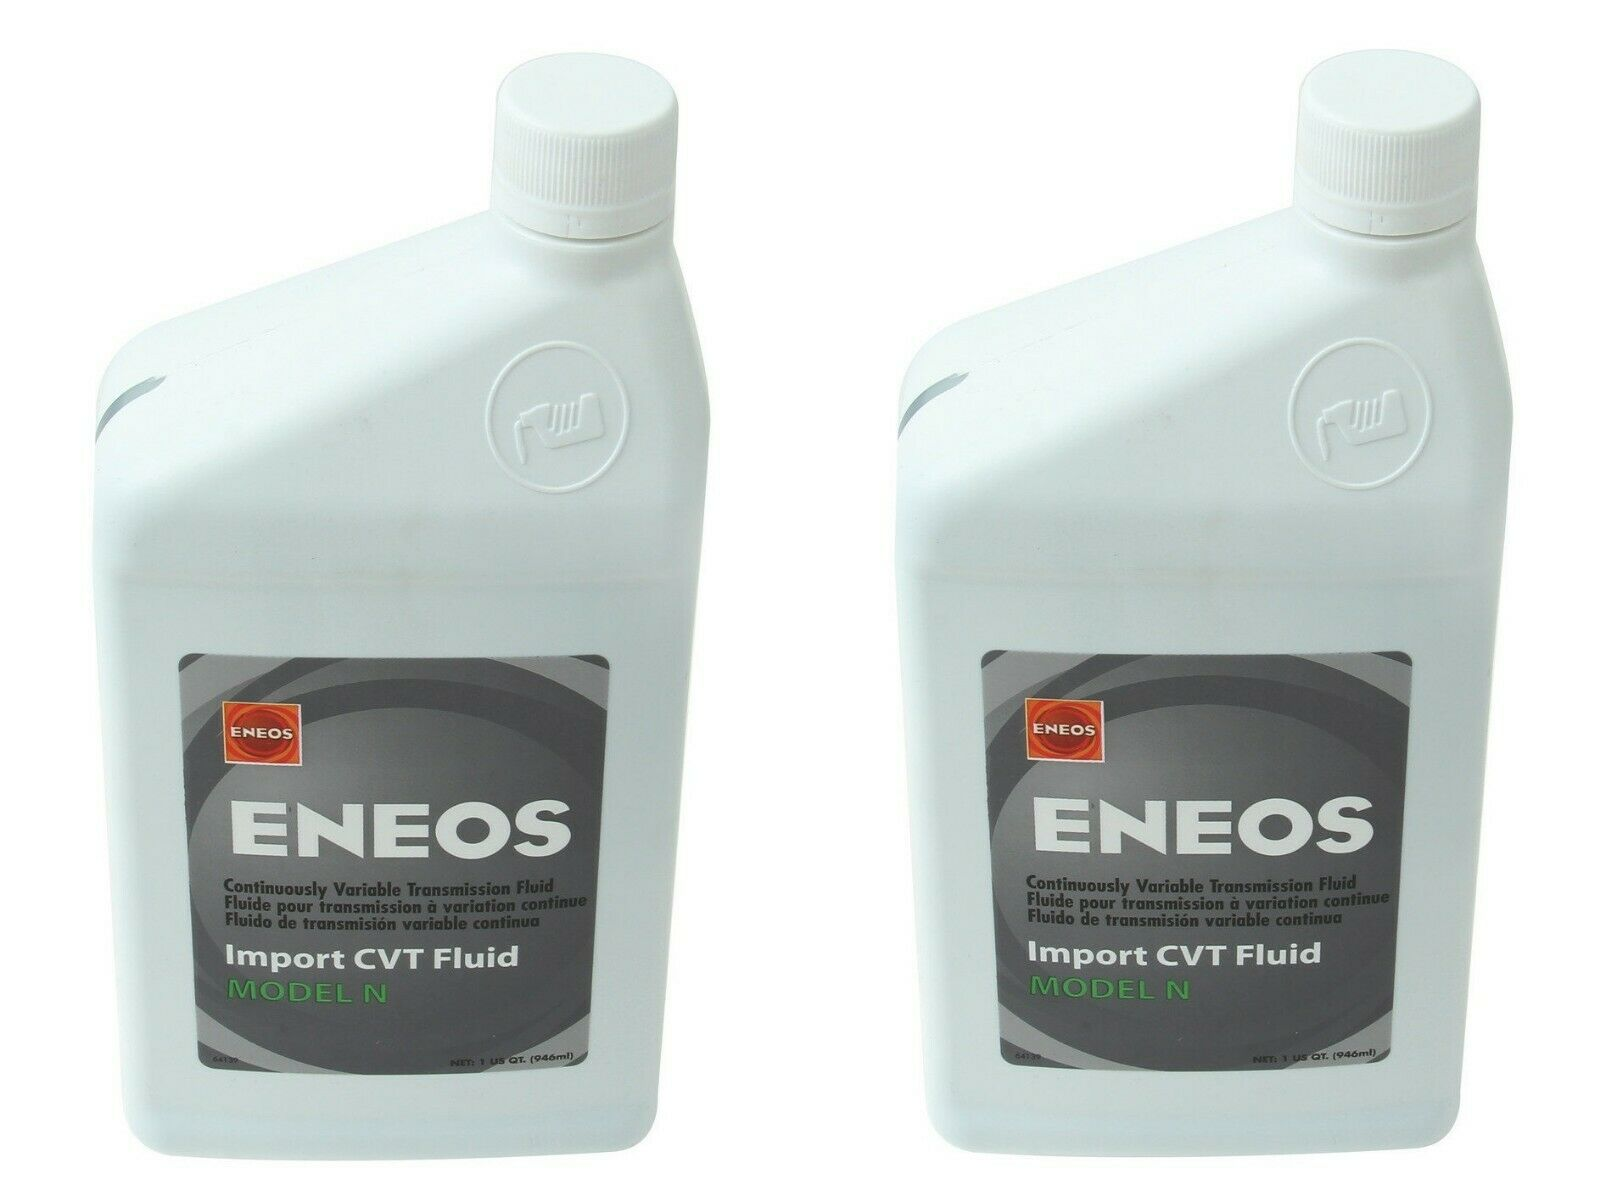 For Set of 2 Quart Auto Trans CVT Fluid for Nissan